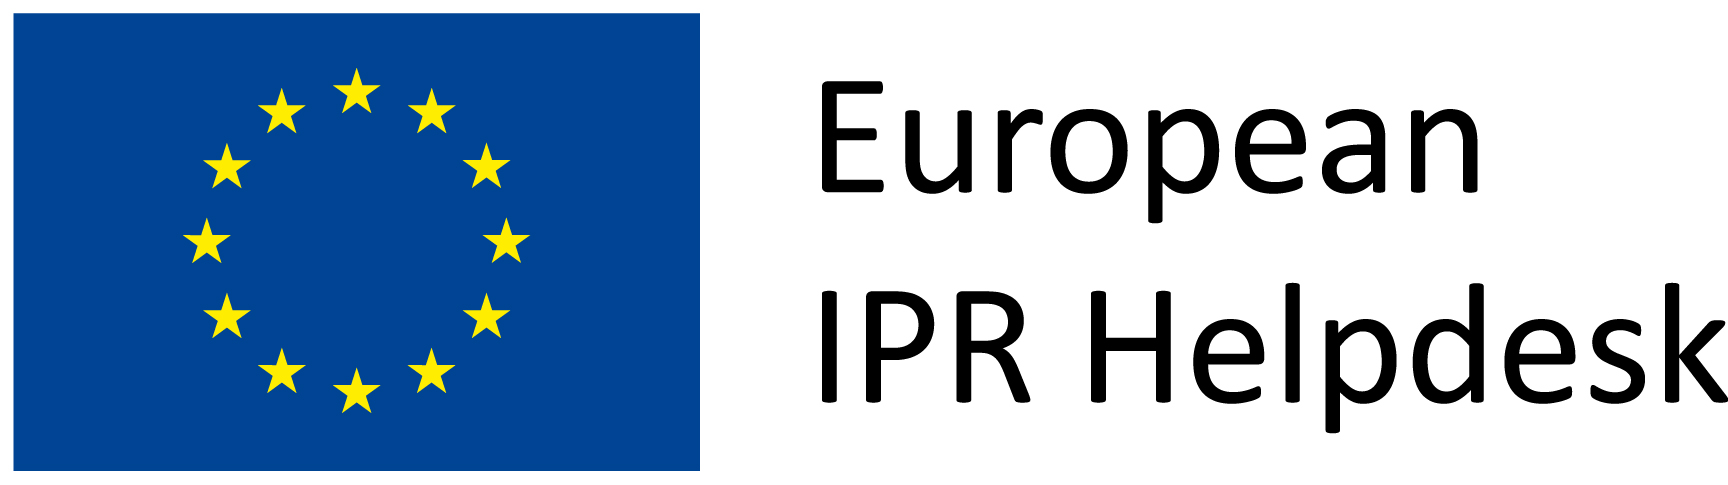 EU IPR Helpdesk Logo may 2013 version